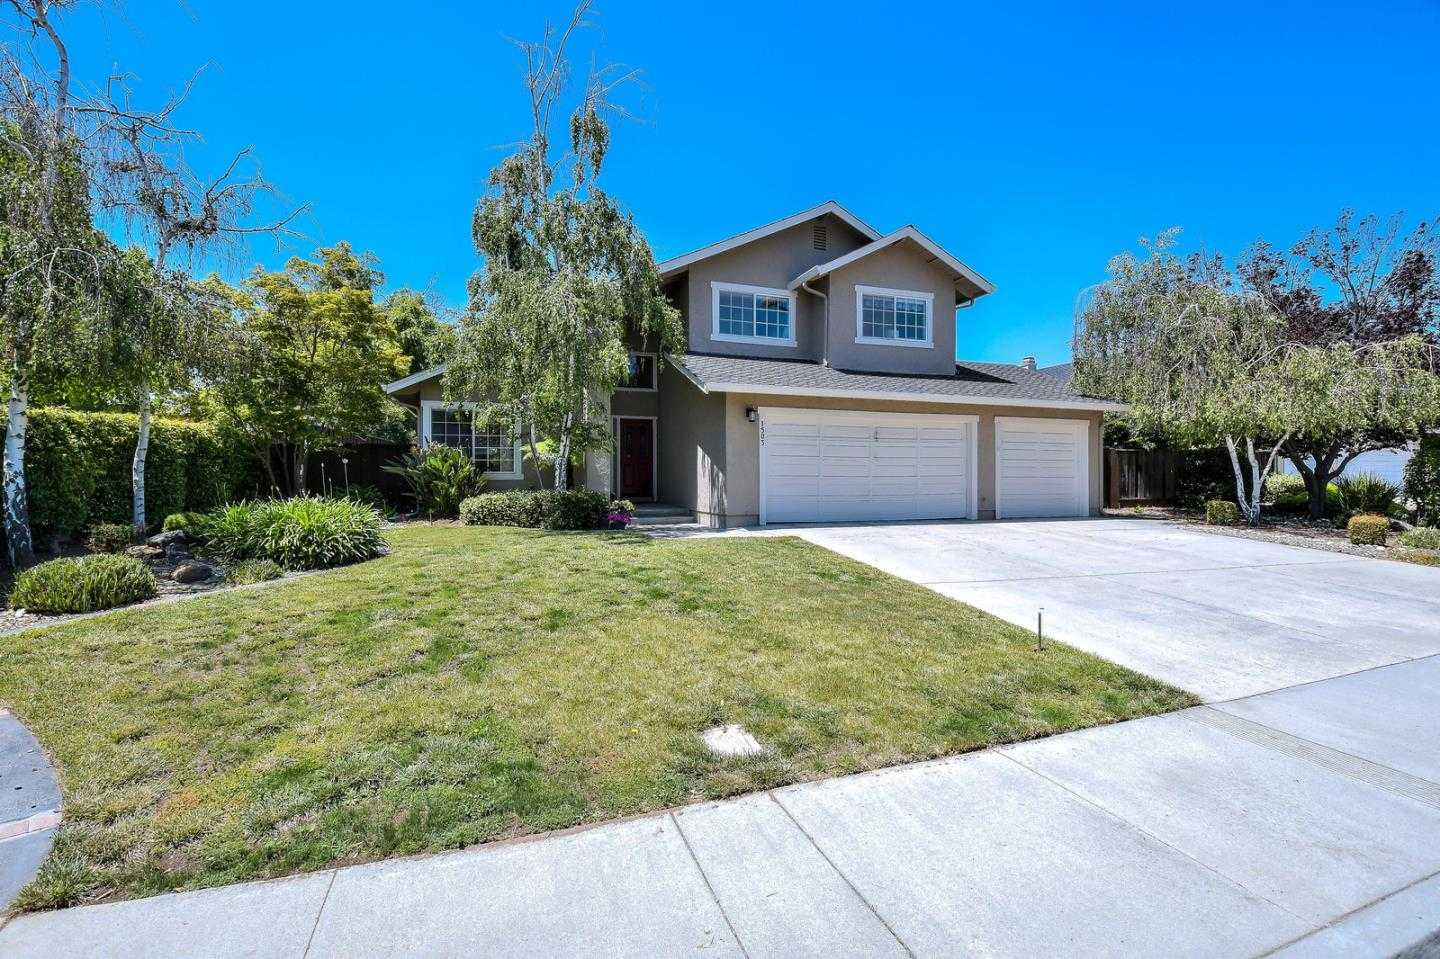 $1,699,000 - 4Br/3Ba -  for Sale in Campbell